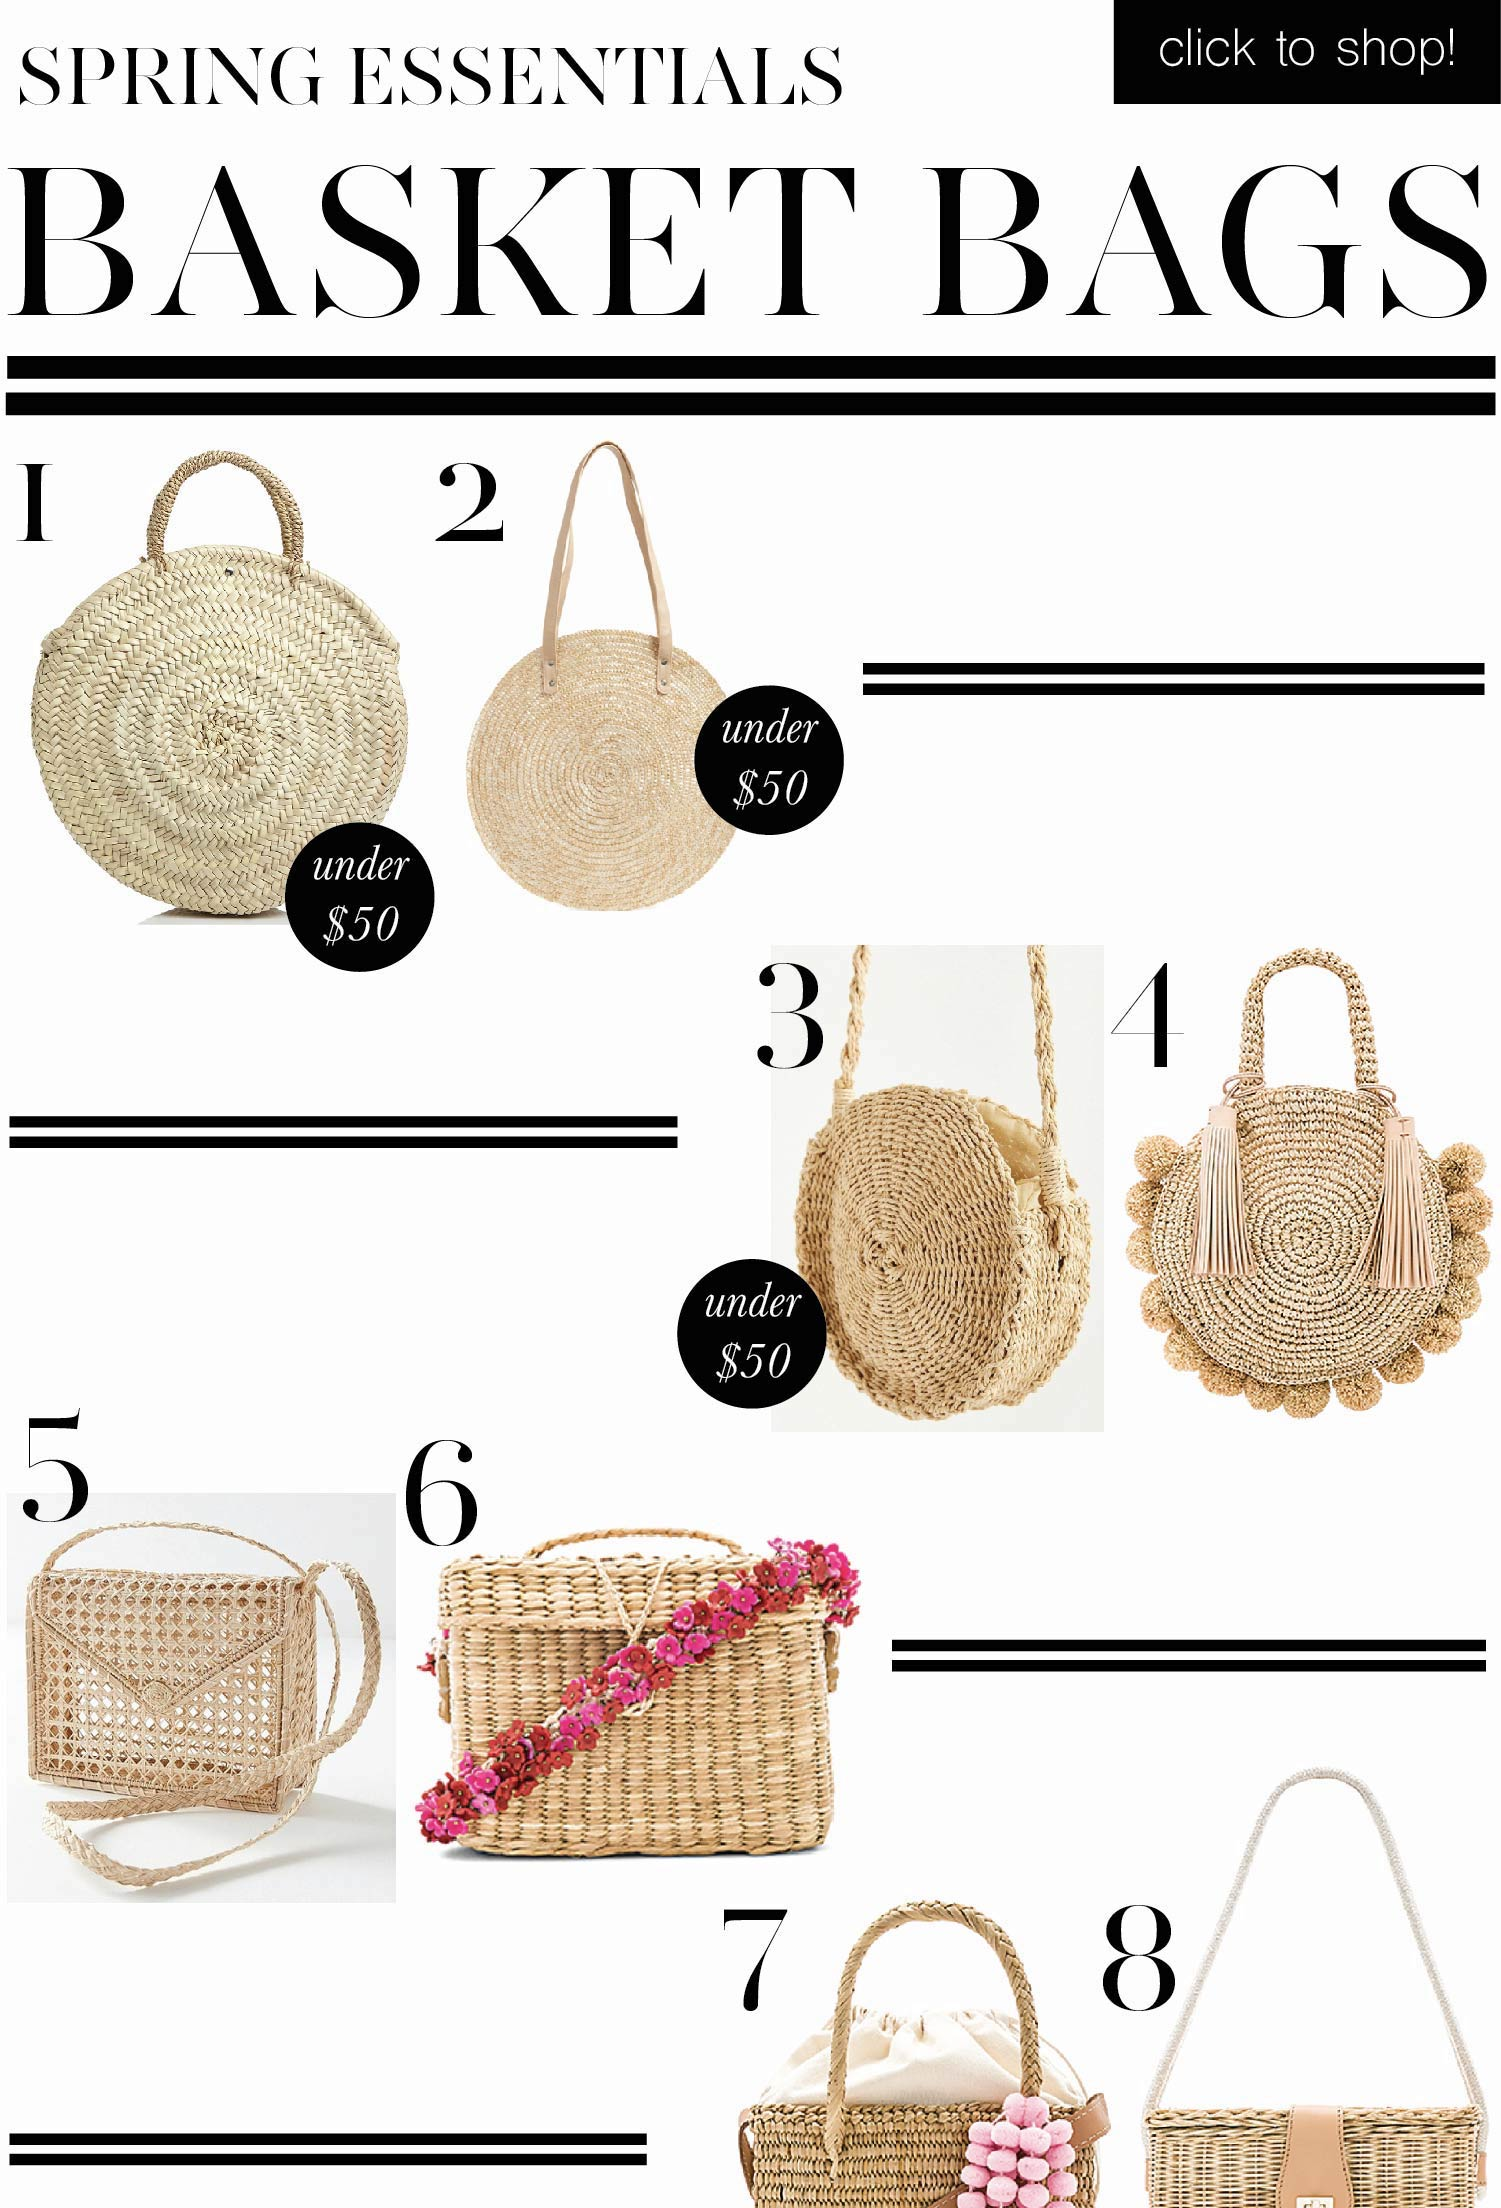 17 Basket Bags We're Very Into RightNow 17 Basket Bags We're Very Into RightNow new pics